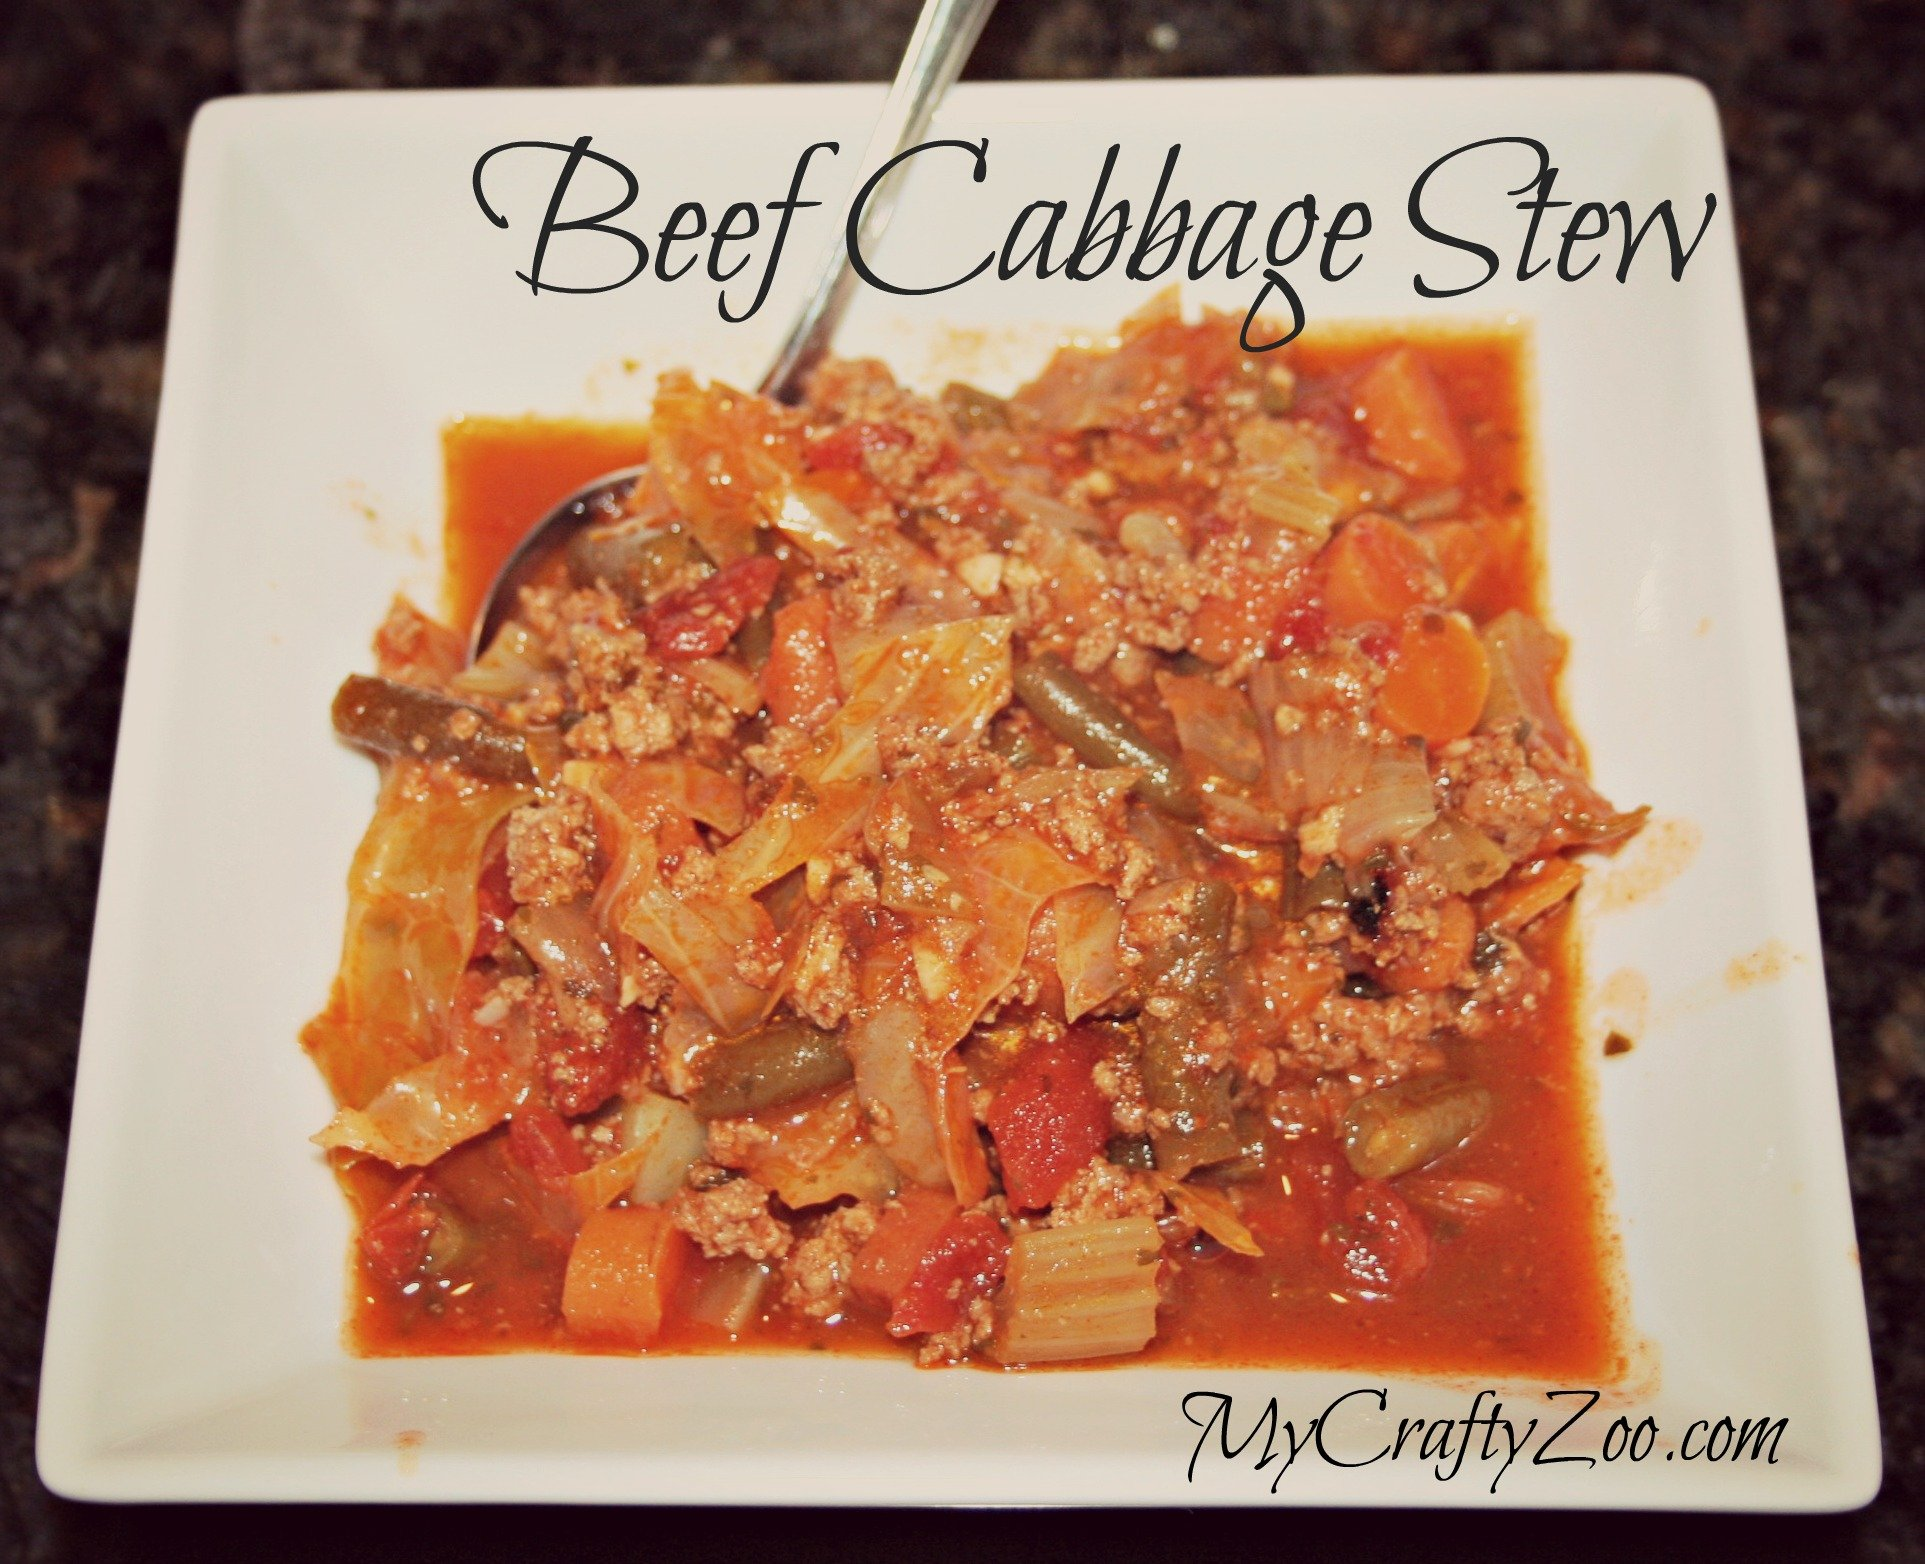 Italian Beef Cabbage Stew: Simple & Delicious!